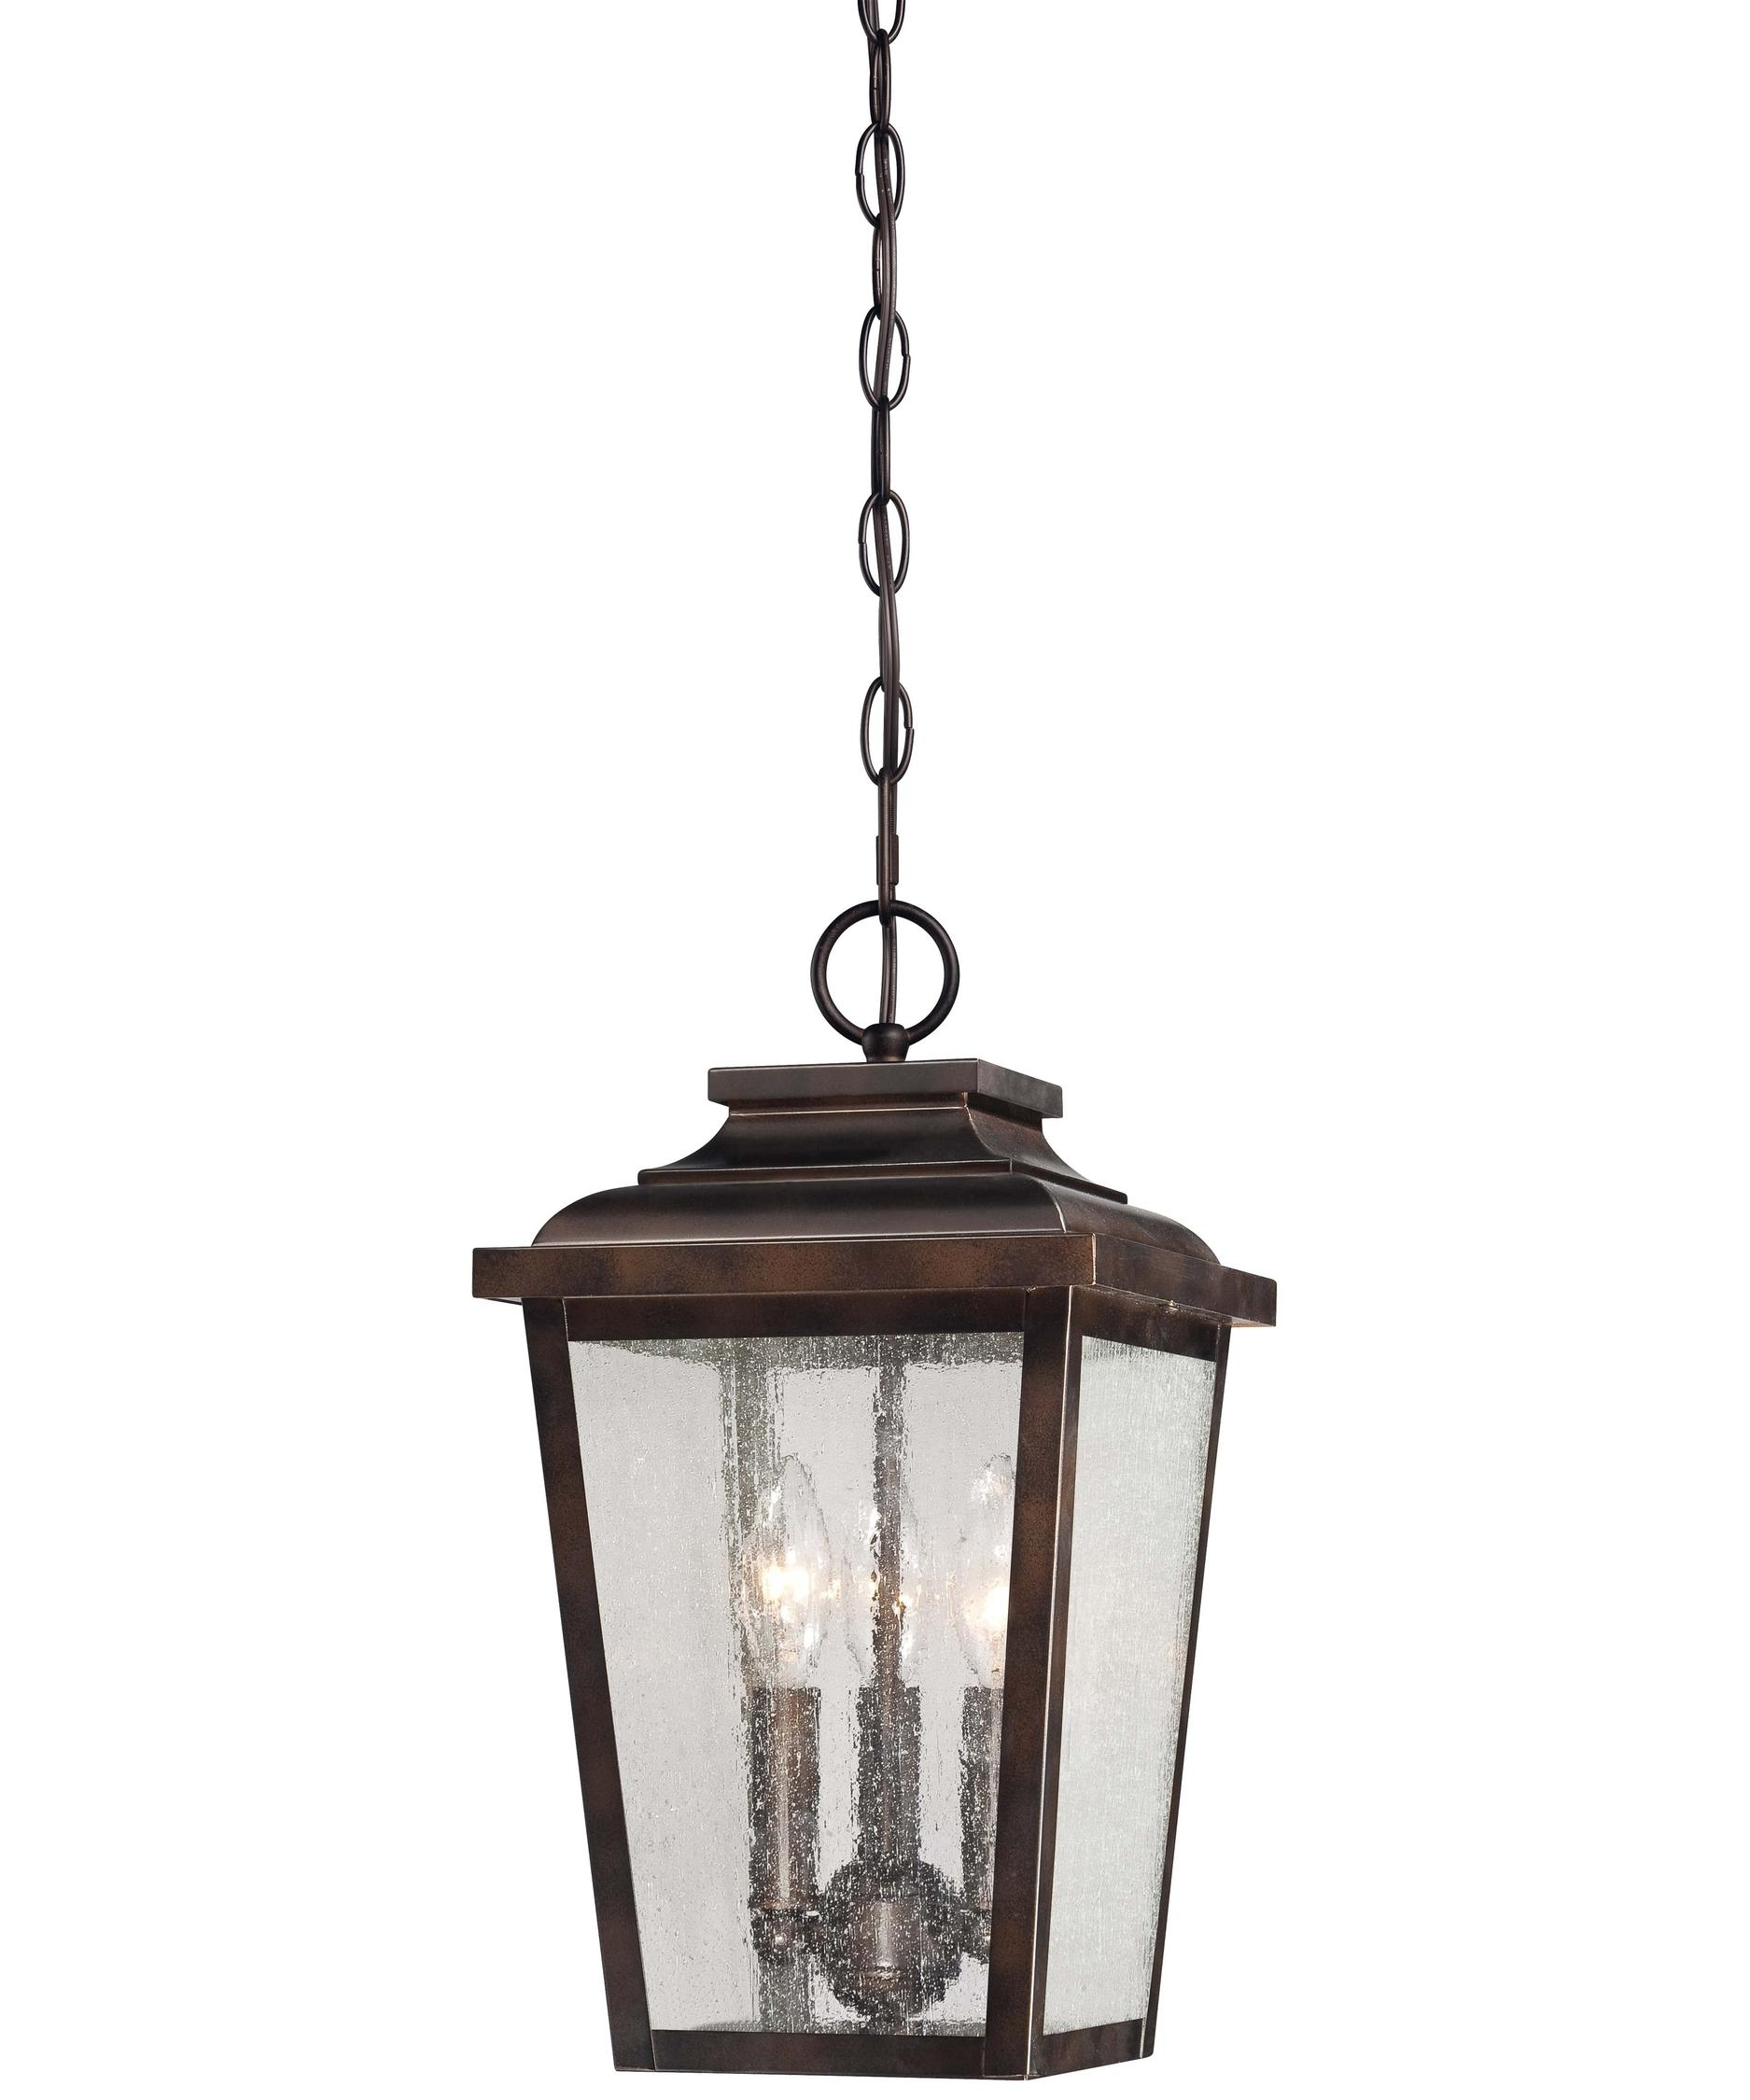 Fireplace : Large Outdoor Pendant Light Fixtures Lighting Extra Throughout Extra Large Outdoor Hanging Lights (#6 of 15)